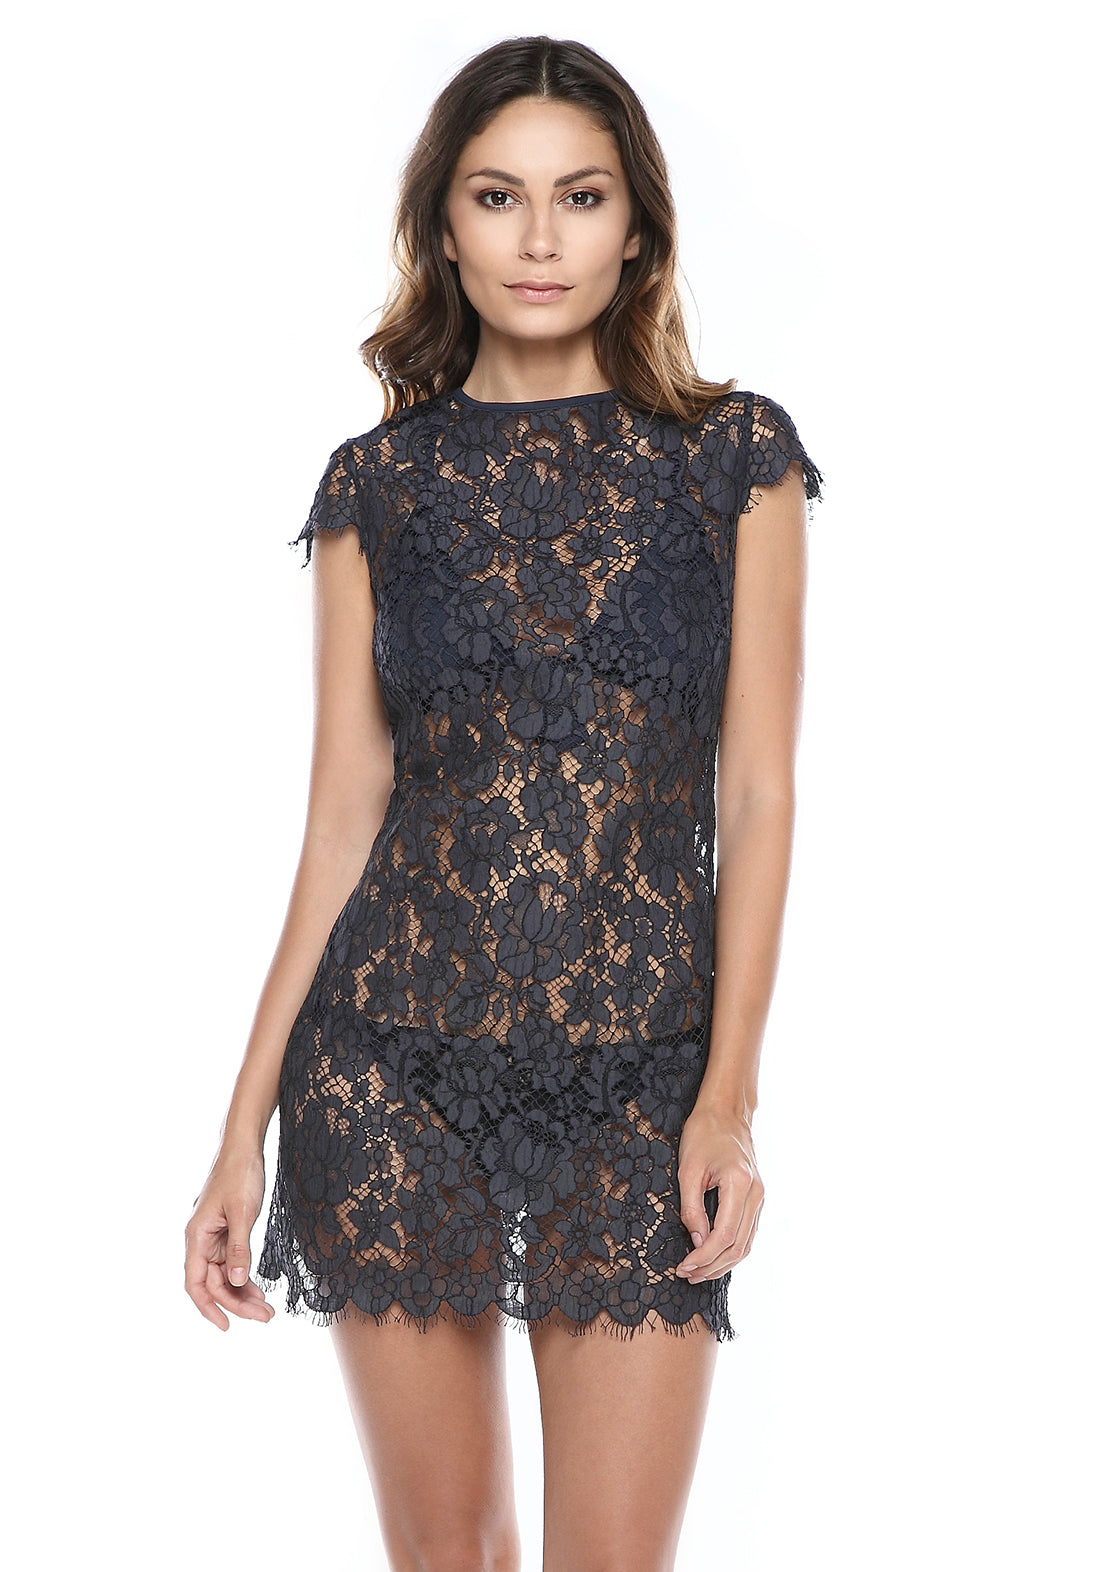 Loulou en Corse Mini Lace Dress in Marine